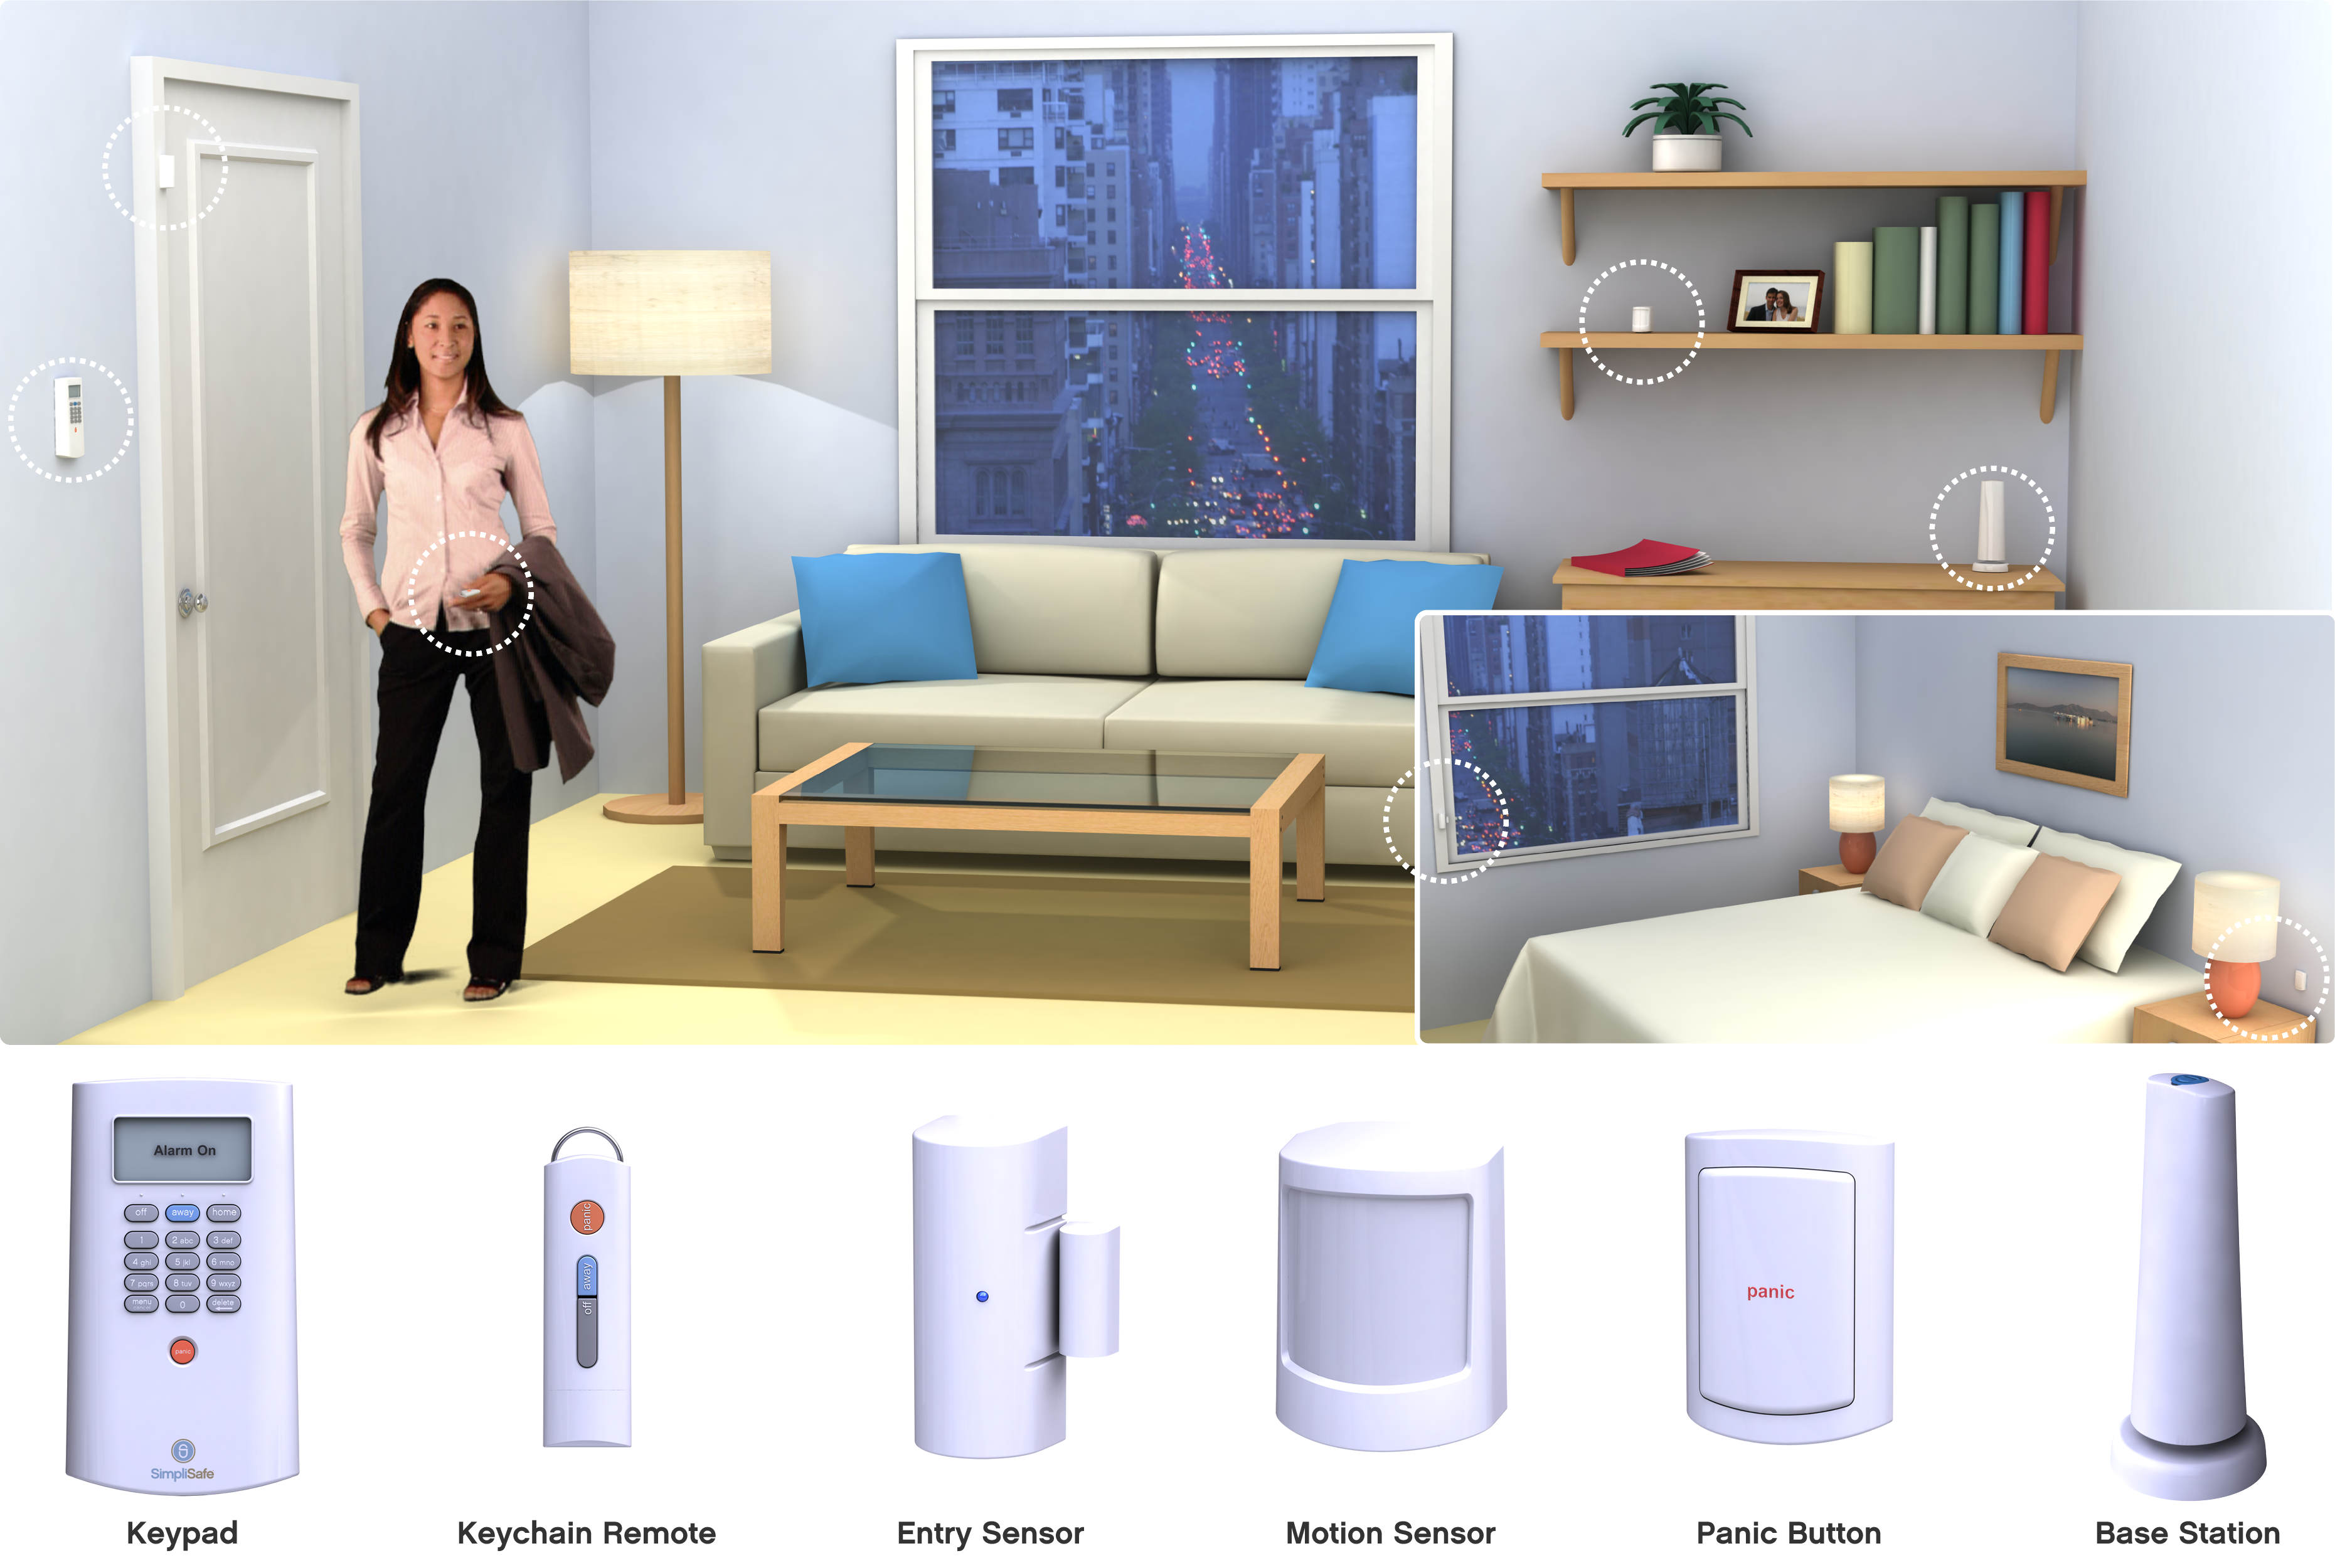 Campus Management Inc And Simplisafe Team Up To Provide